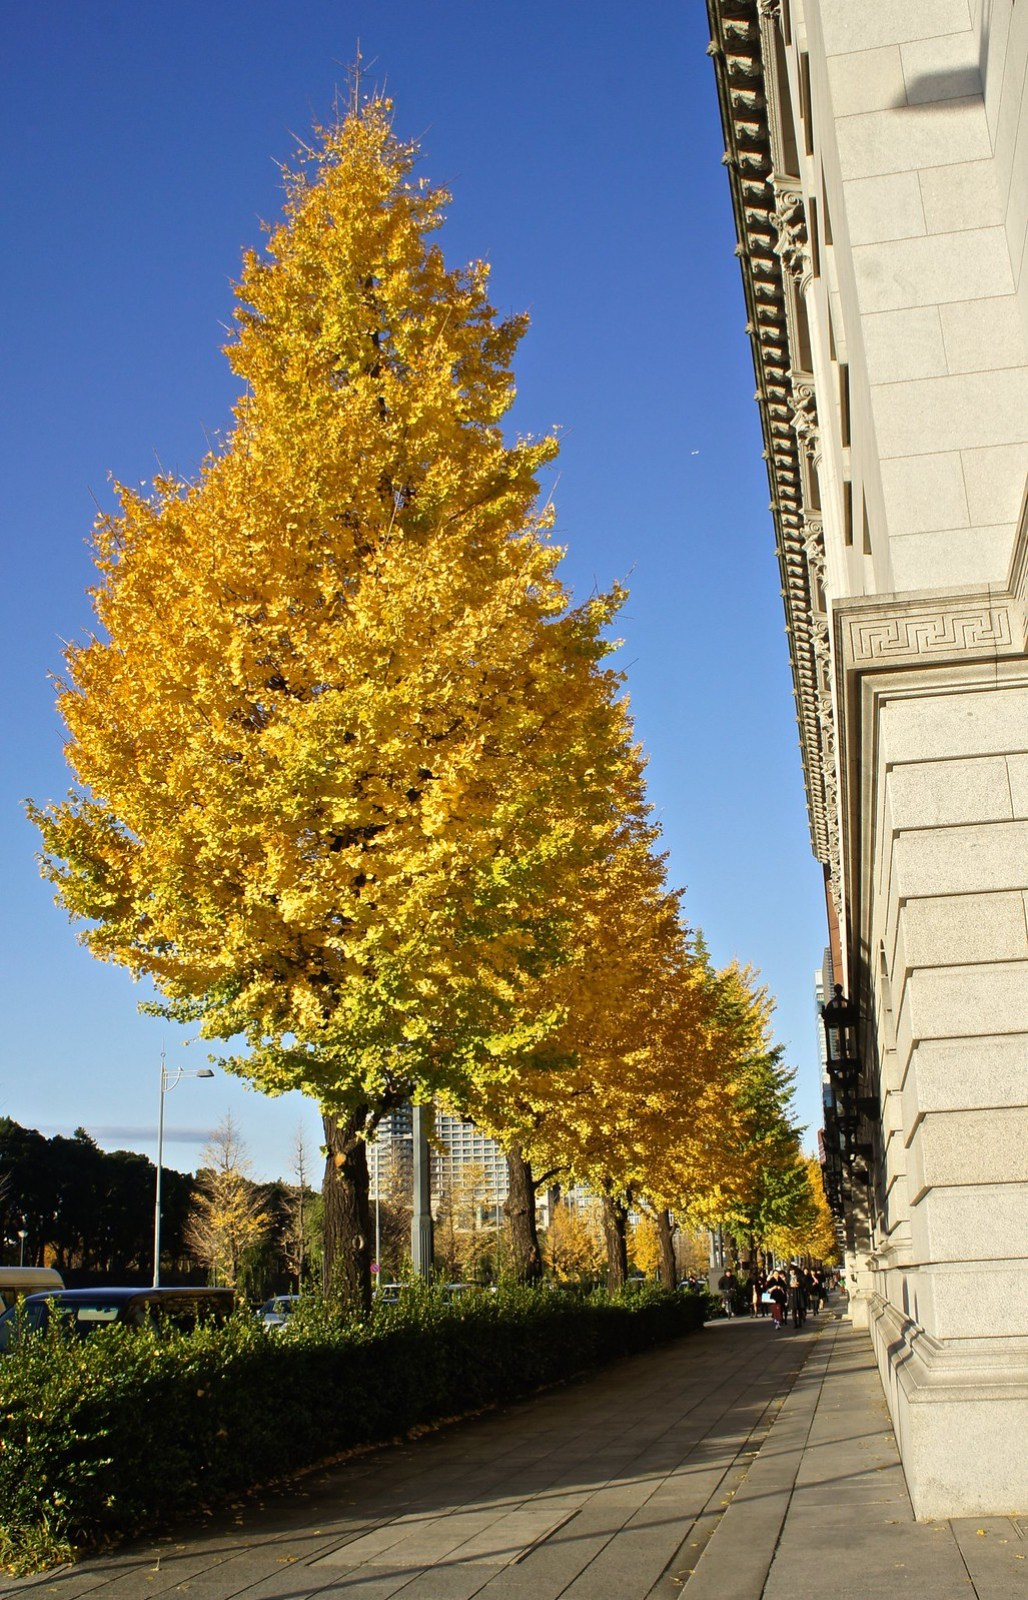 Tokyo Station in background with Ginkgo, Maidenhair color change